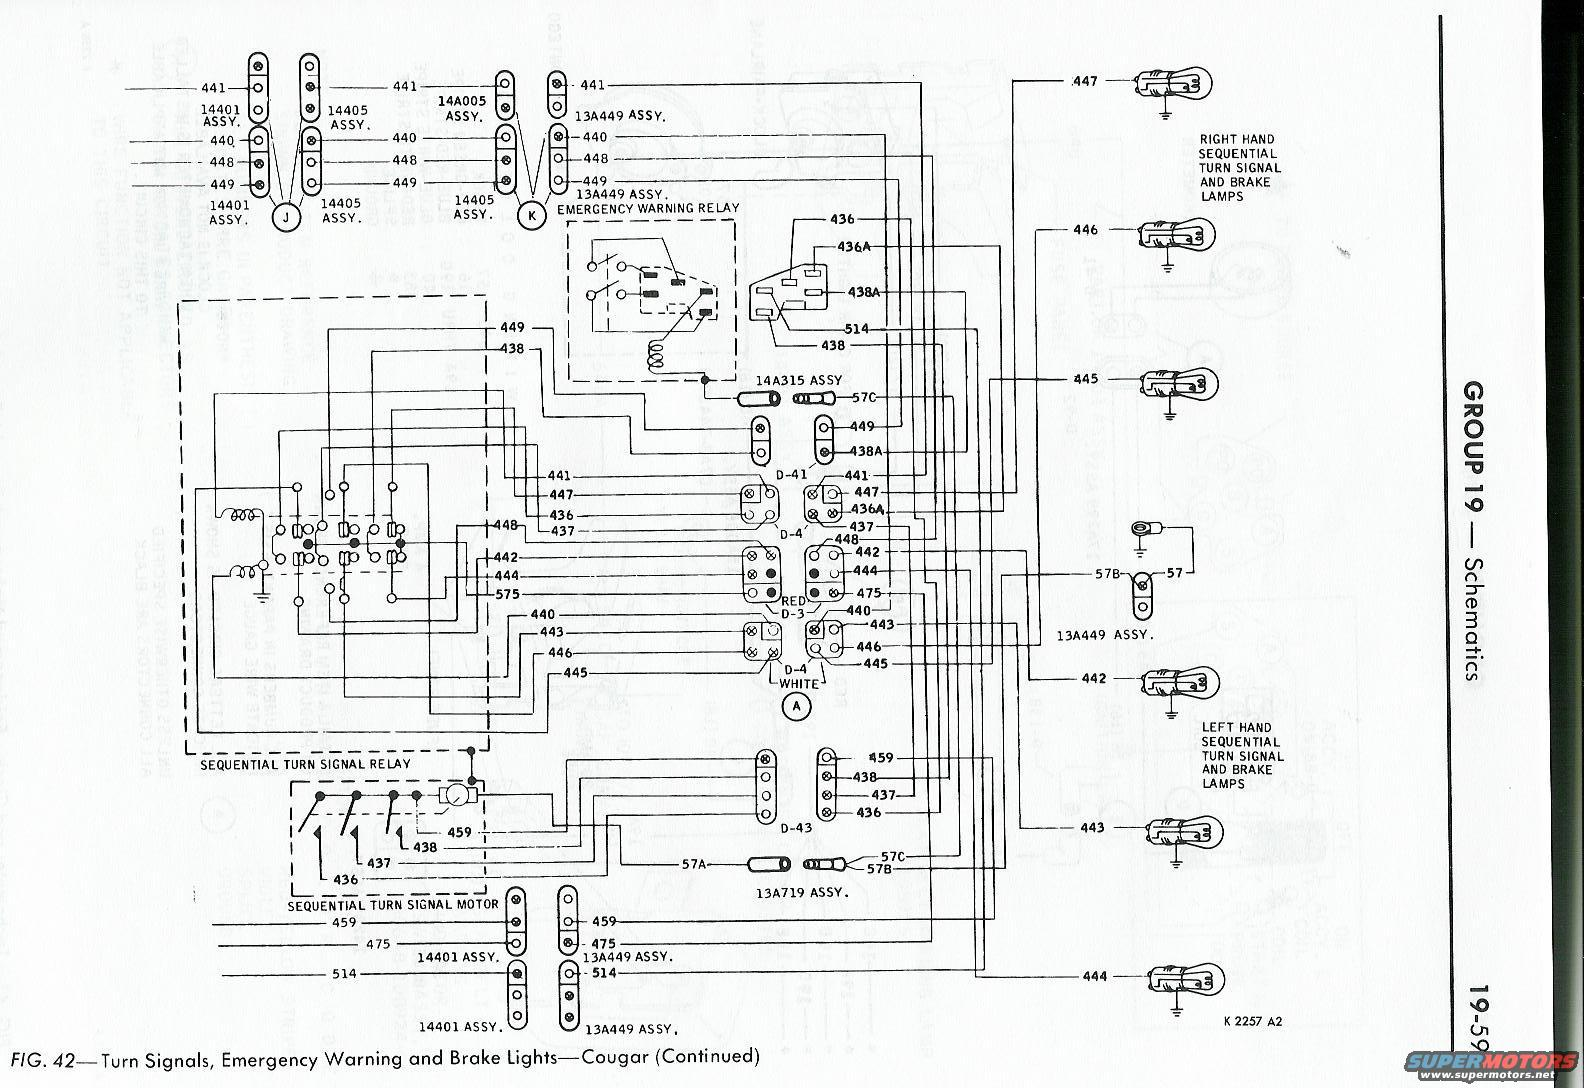 Cougar Wiring Diagram